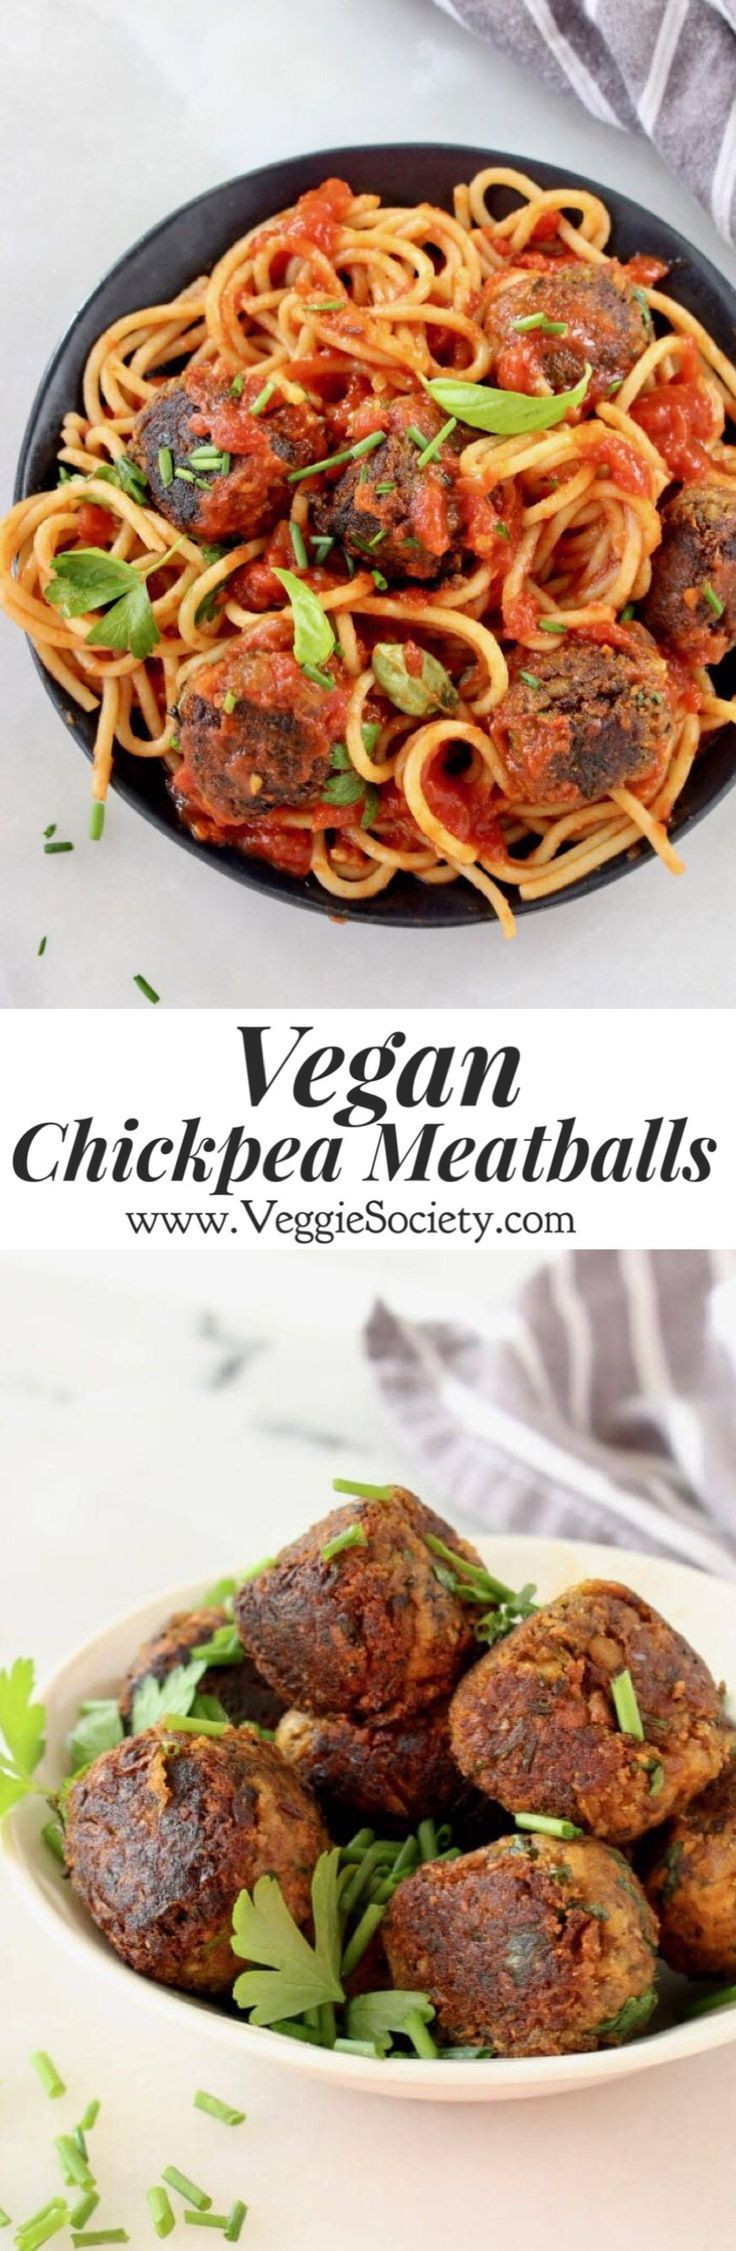 Vegan Chickpea Meatballs with Mushrooms and Herbs that we bind together with chickpea flour and flax eggs | VeggieSociety.com @VeggieSociety